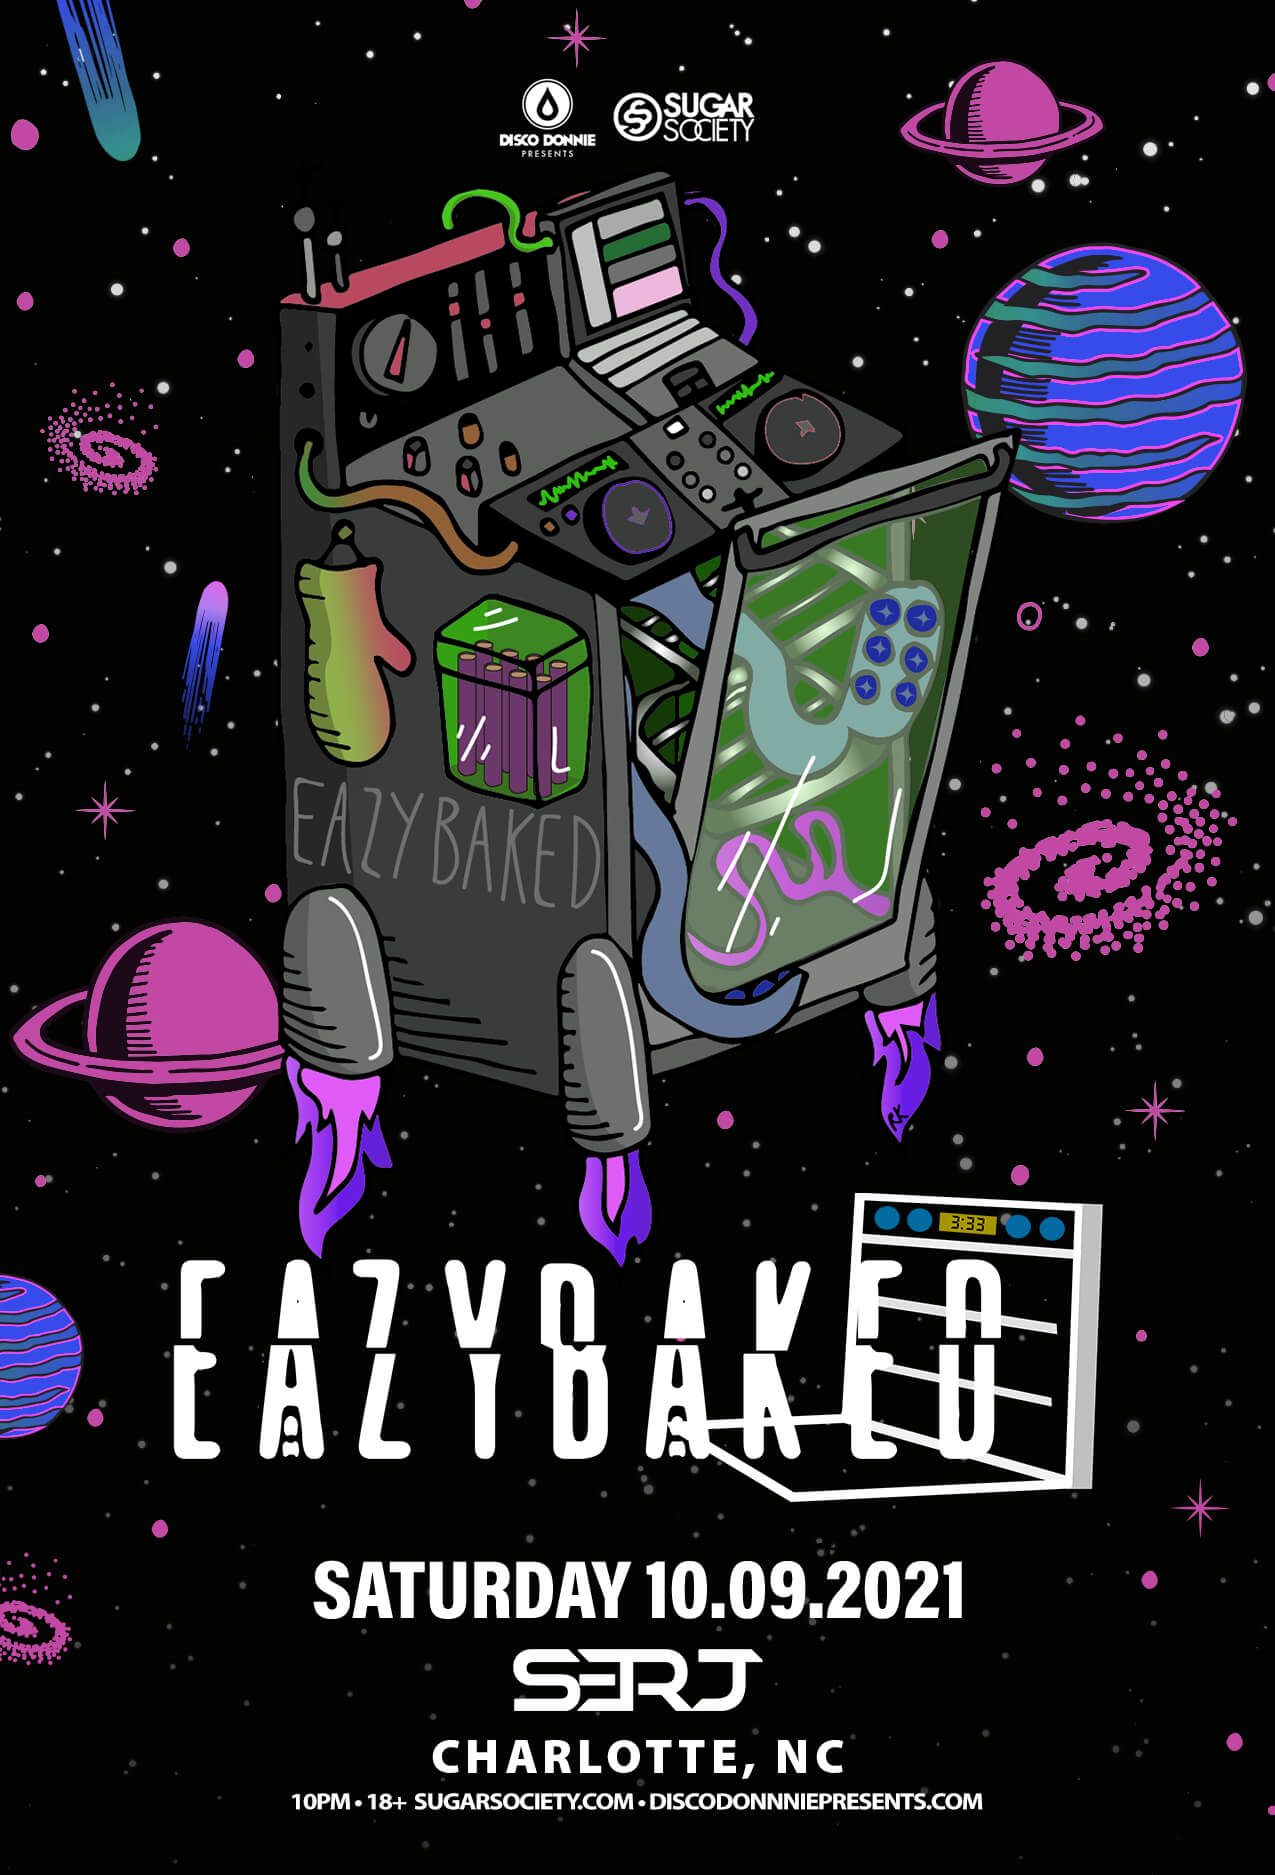 EazyBaked in Charlotte